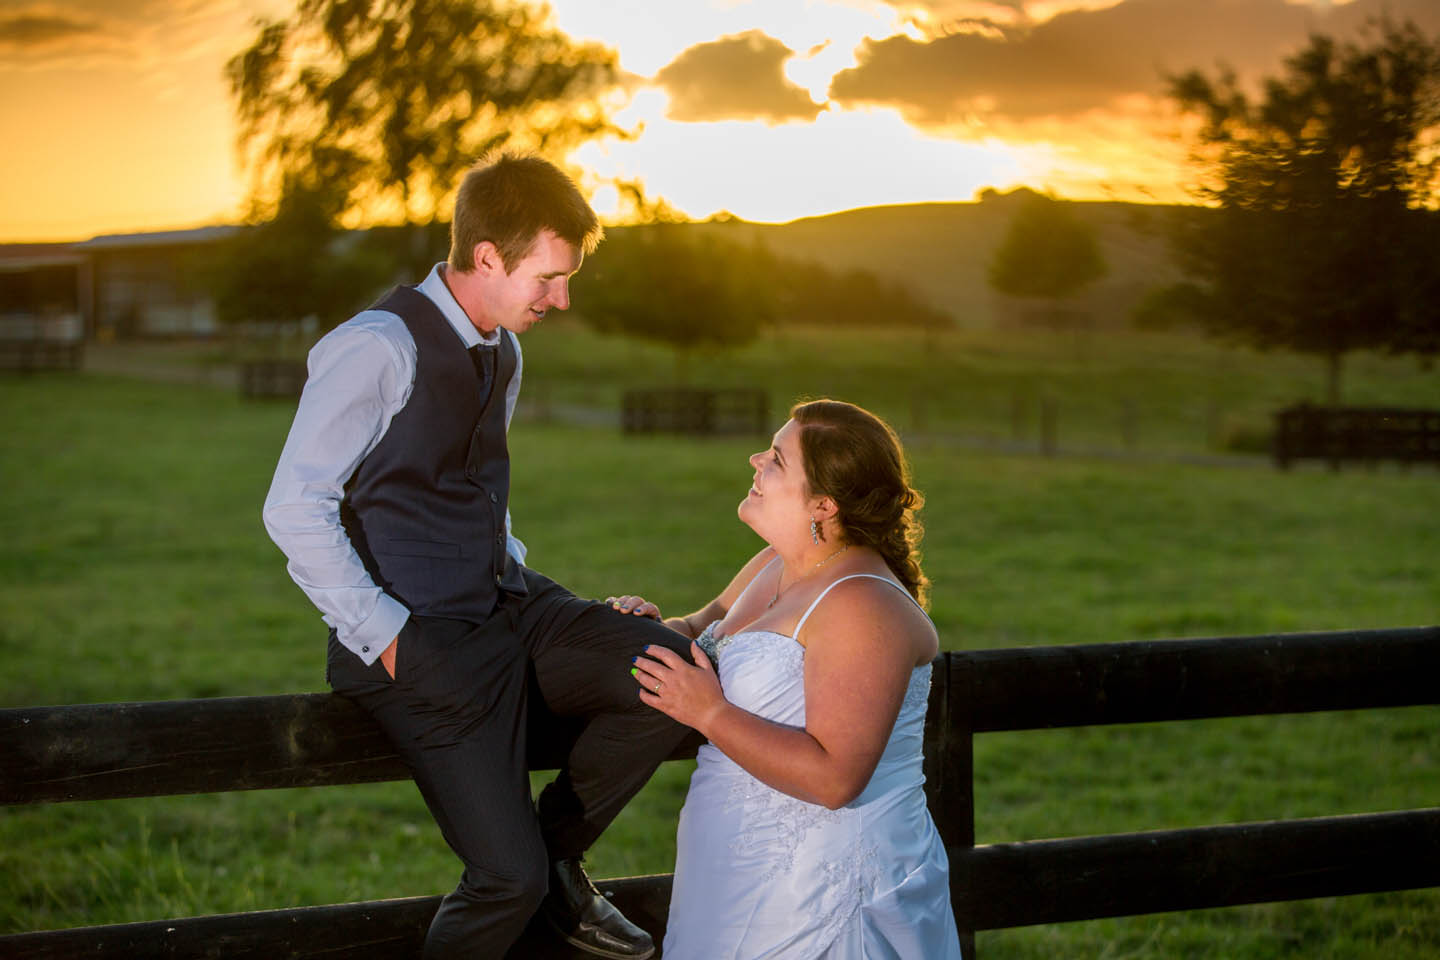 groom sitting on a fence talking to his bride at The Red Barn at sunset